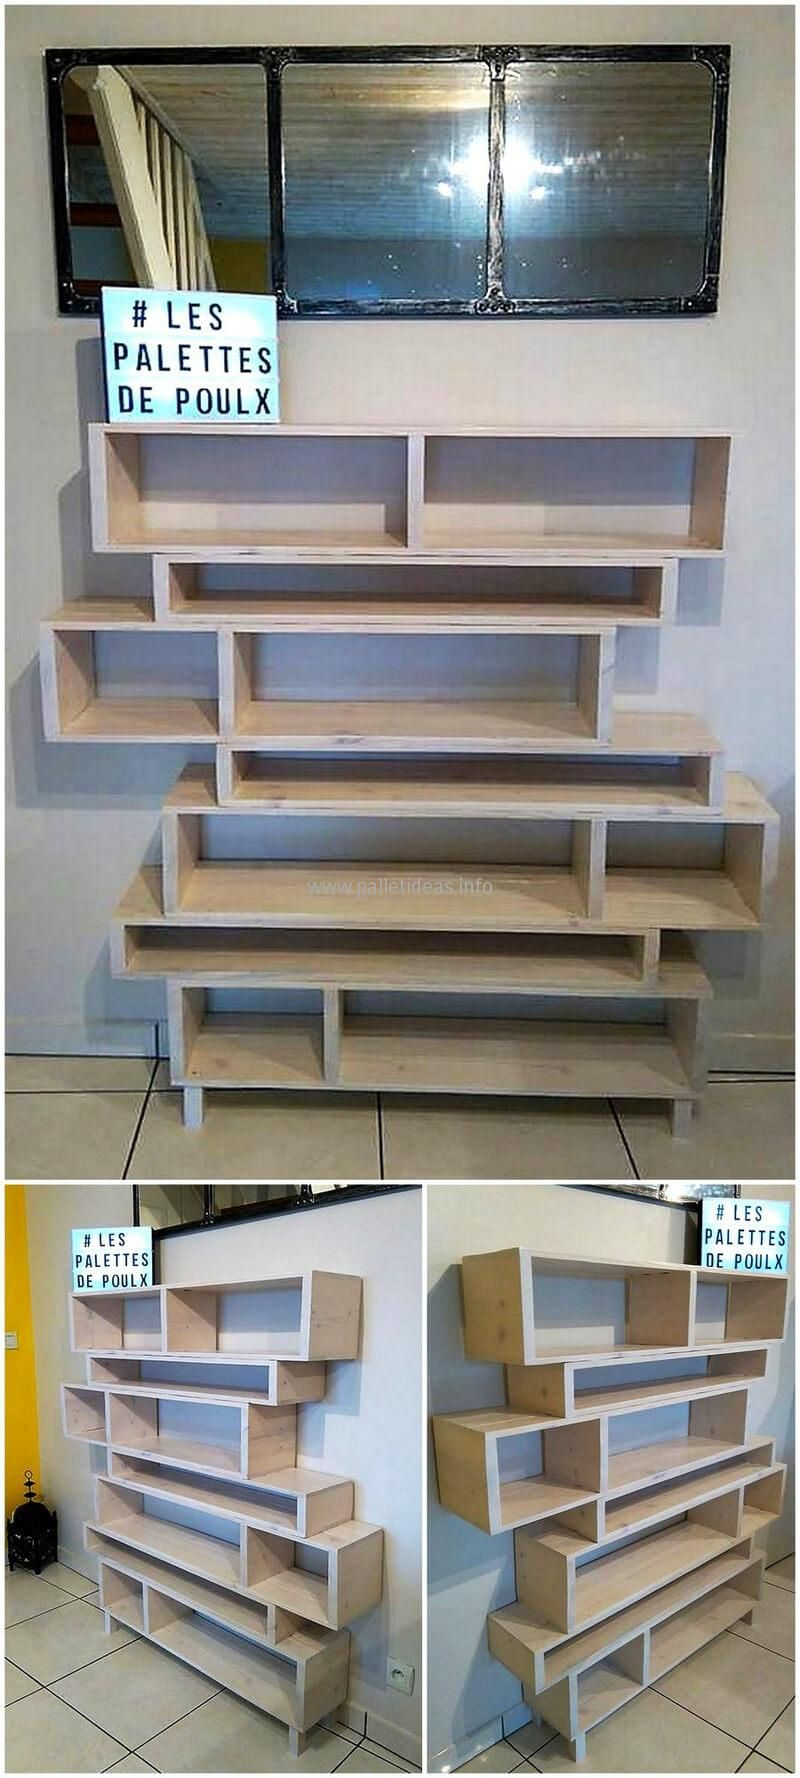 Amazing Uses For Old Used Shipping Pallets | Almacenamiento, Madera ...